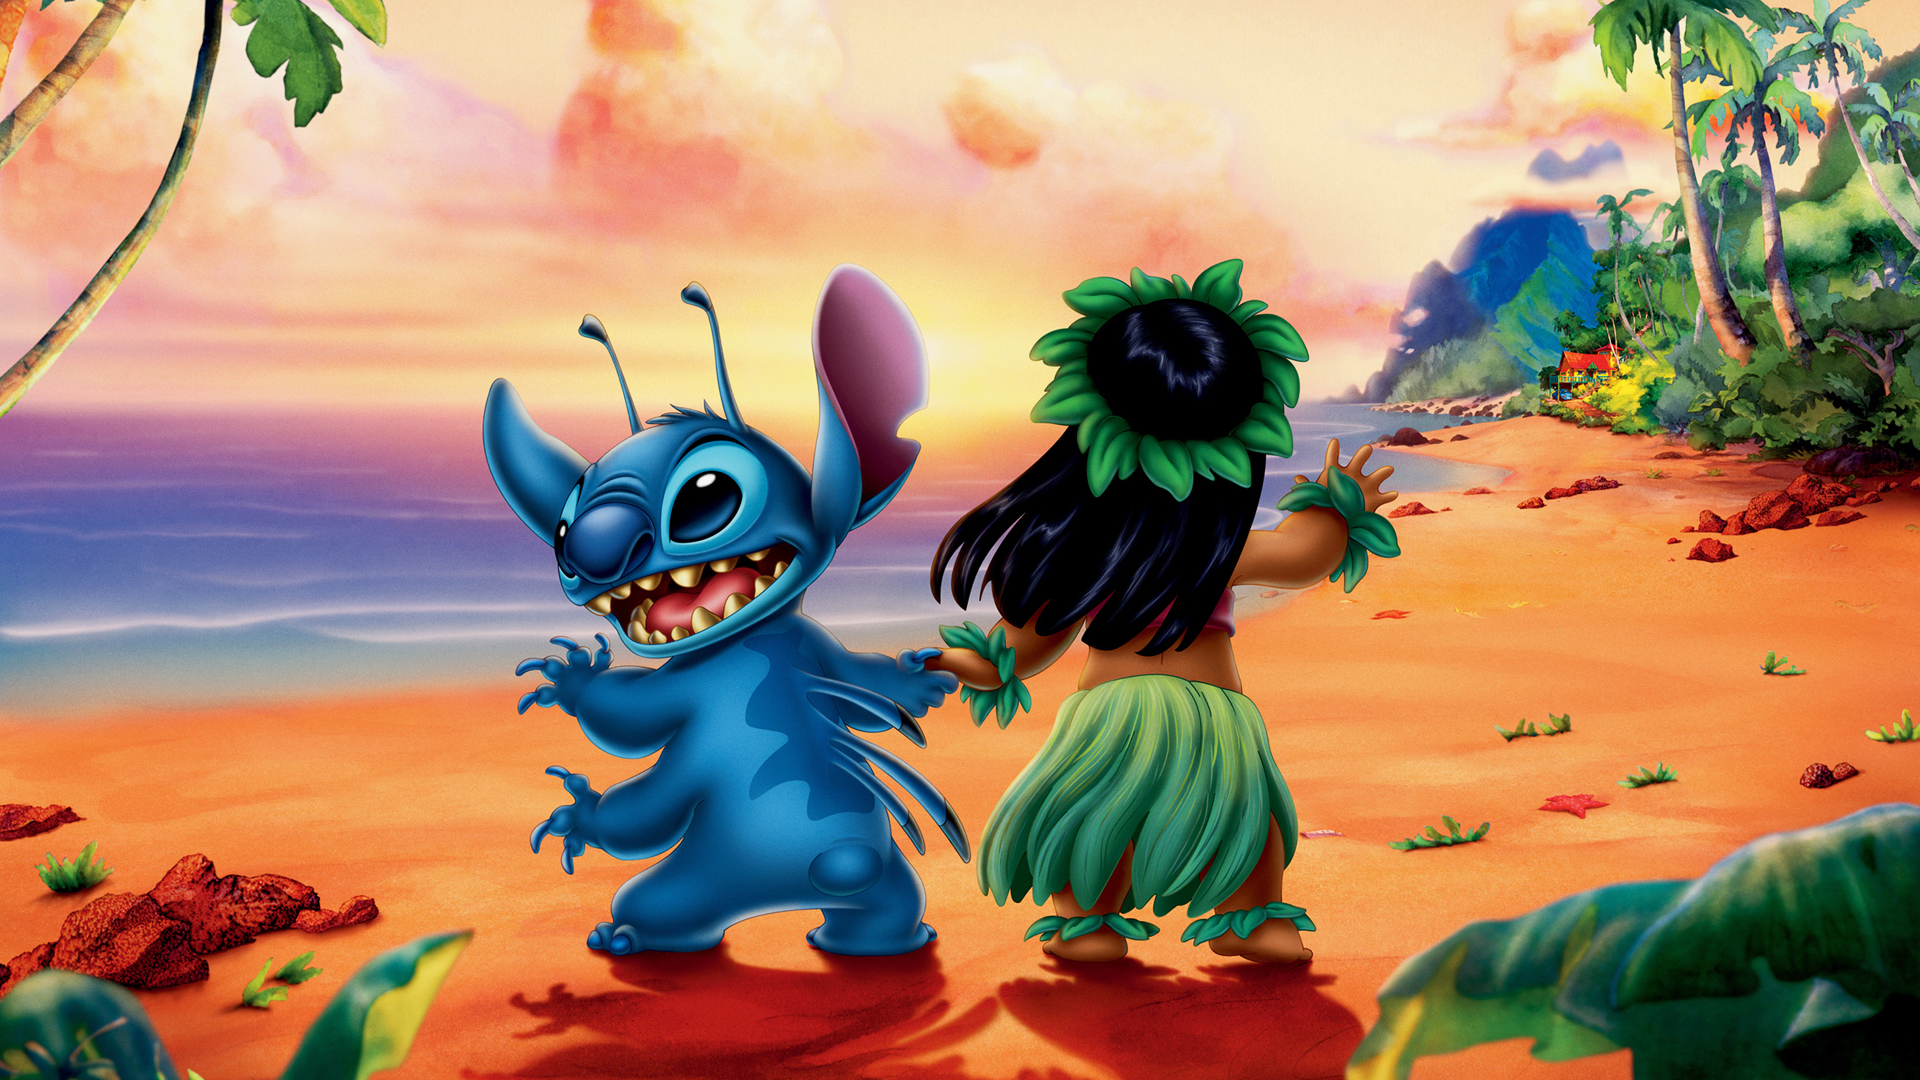 It is a picture of Rare Lilo & Stitch Images